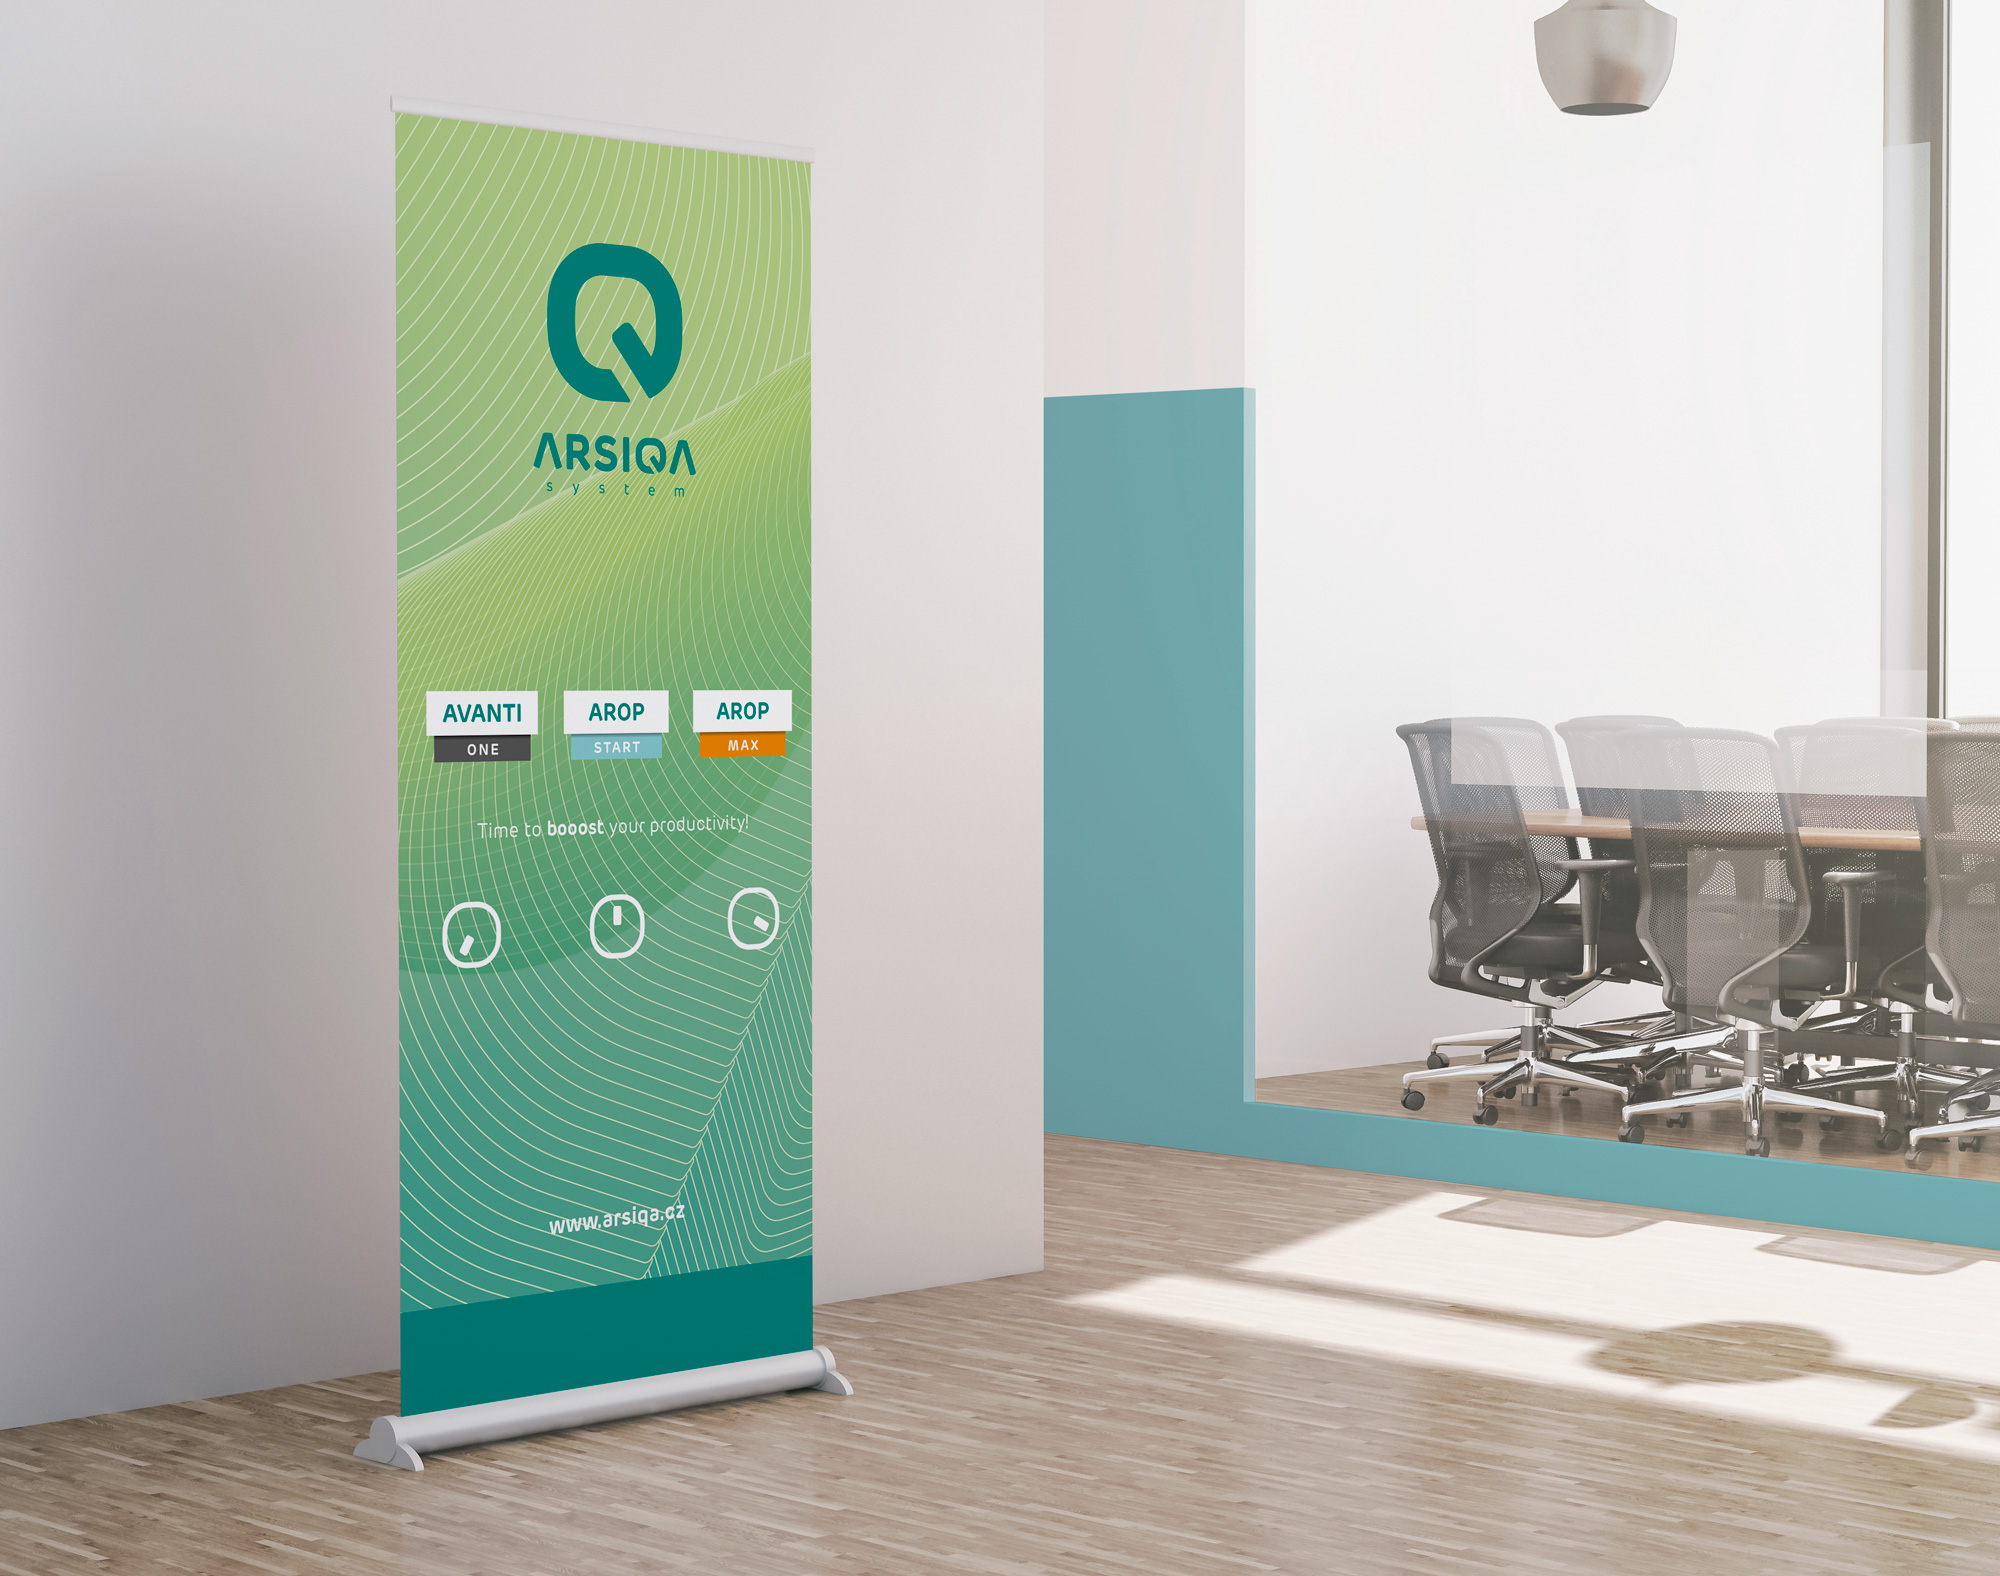 [album/Products_Model_Product/126/ARSIQA_roll-up.jpg]